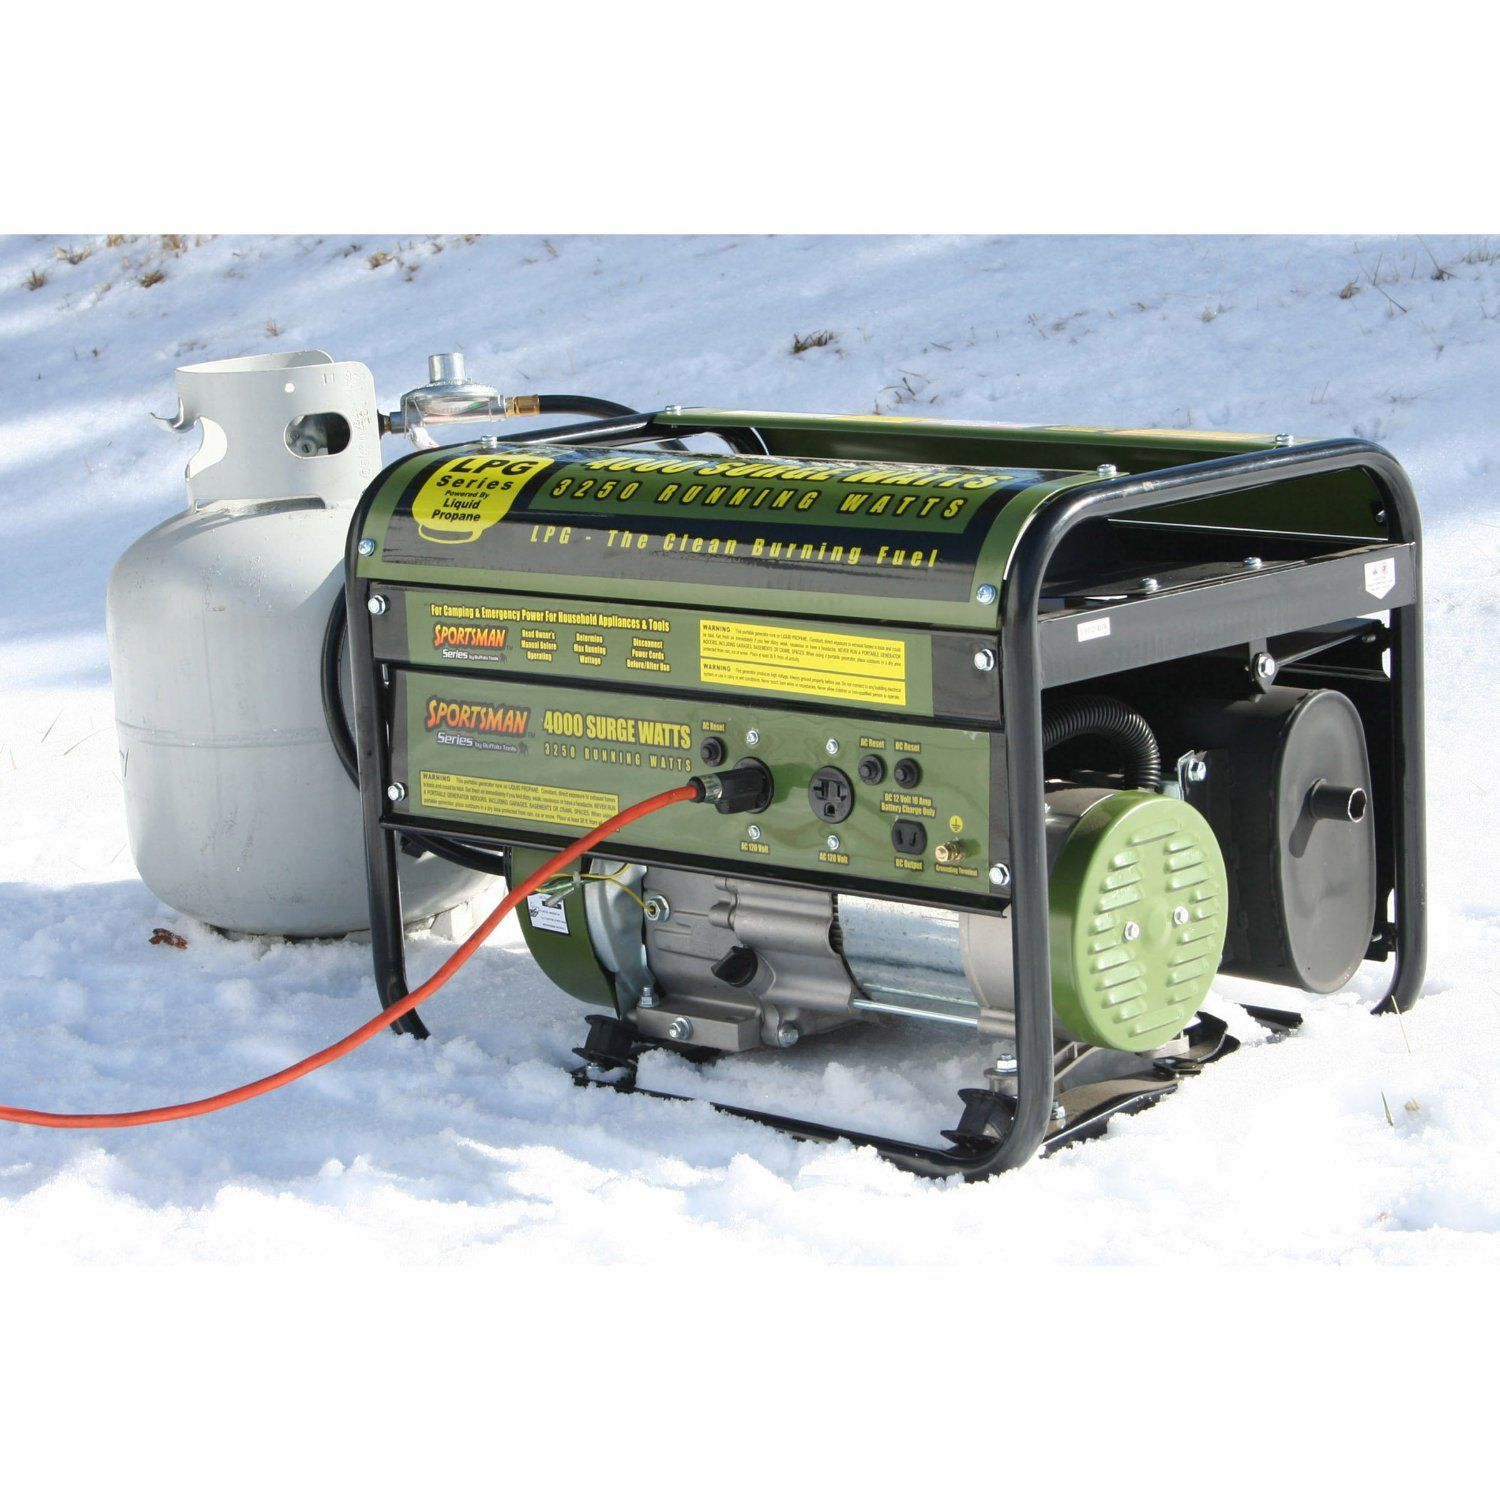 Ideal for hunters or campers will stand the worst weather $359 10